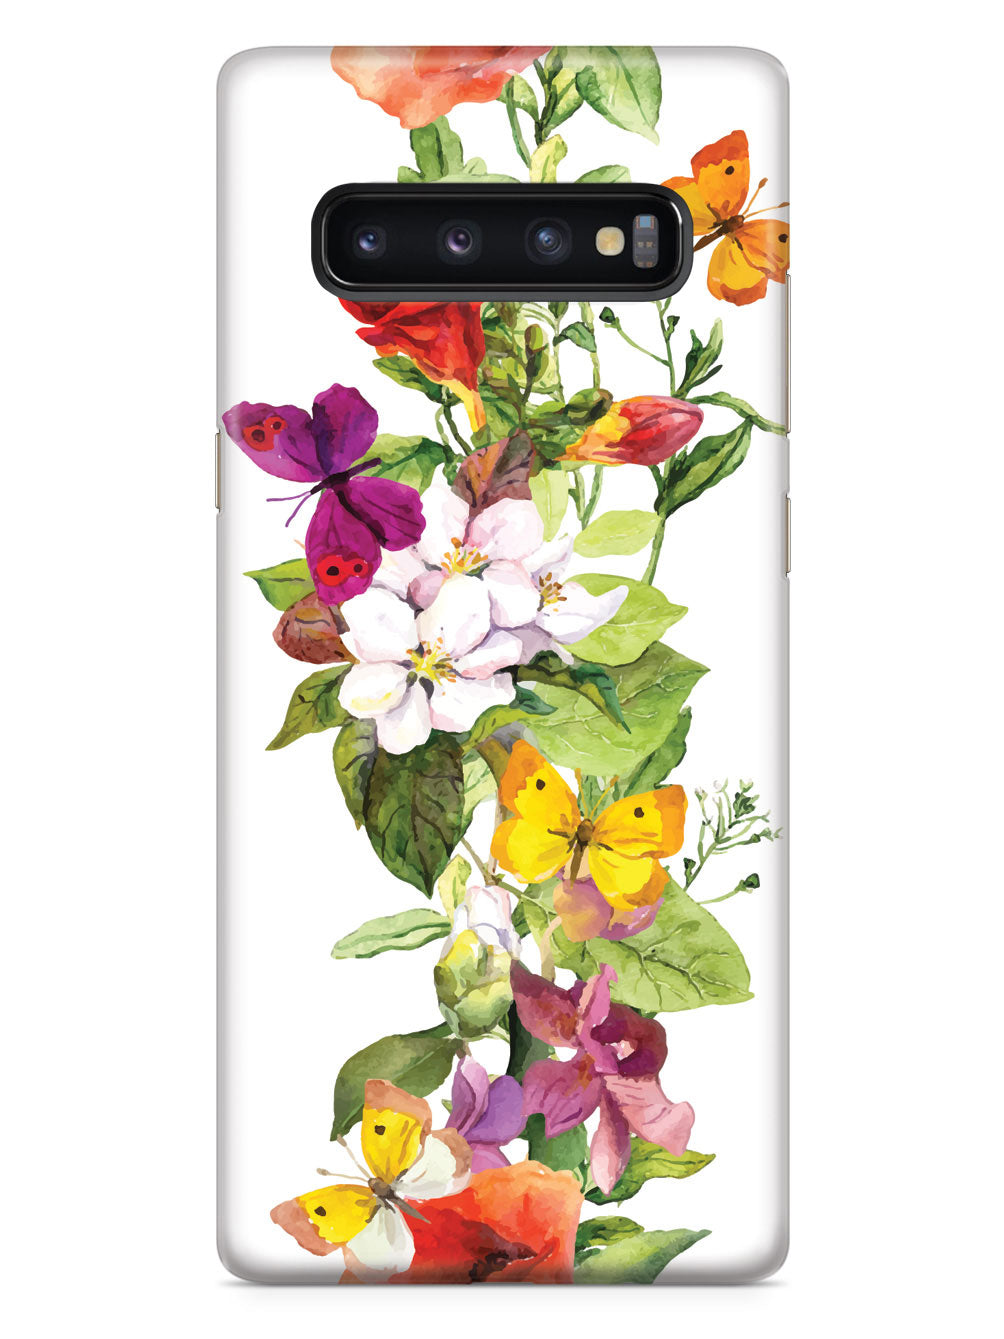 Watercolor Flowers and Butterflies Case